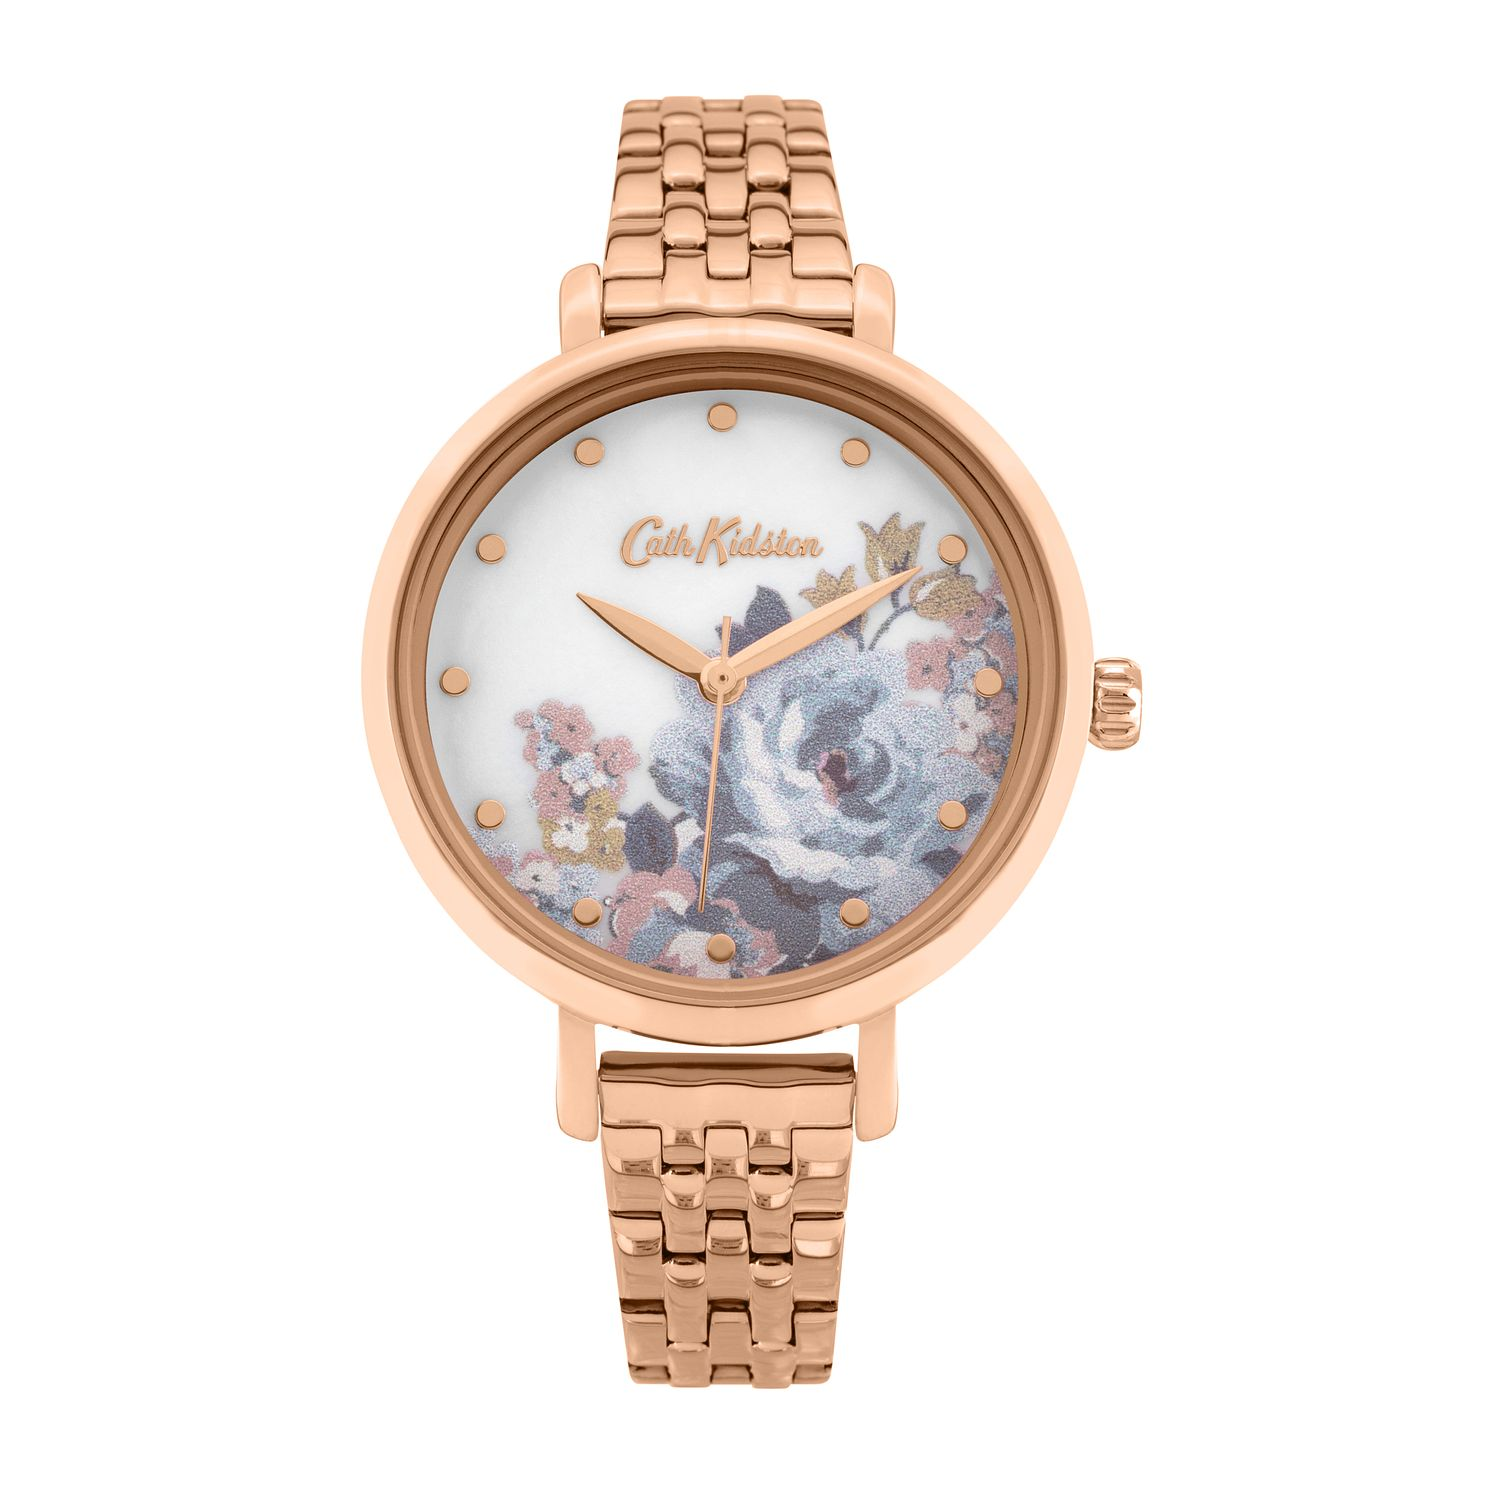 Cath Kidston Ladies' Rose Gold Bracelet Watch - Product number 8468451